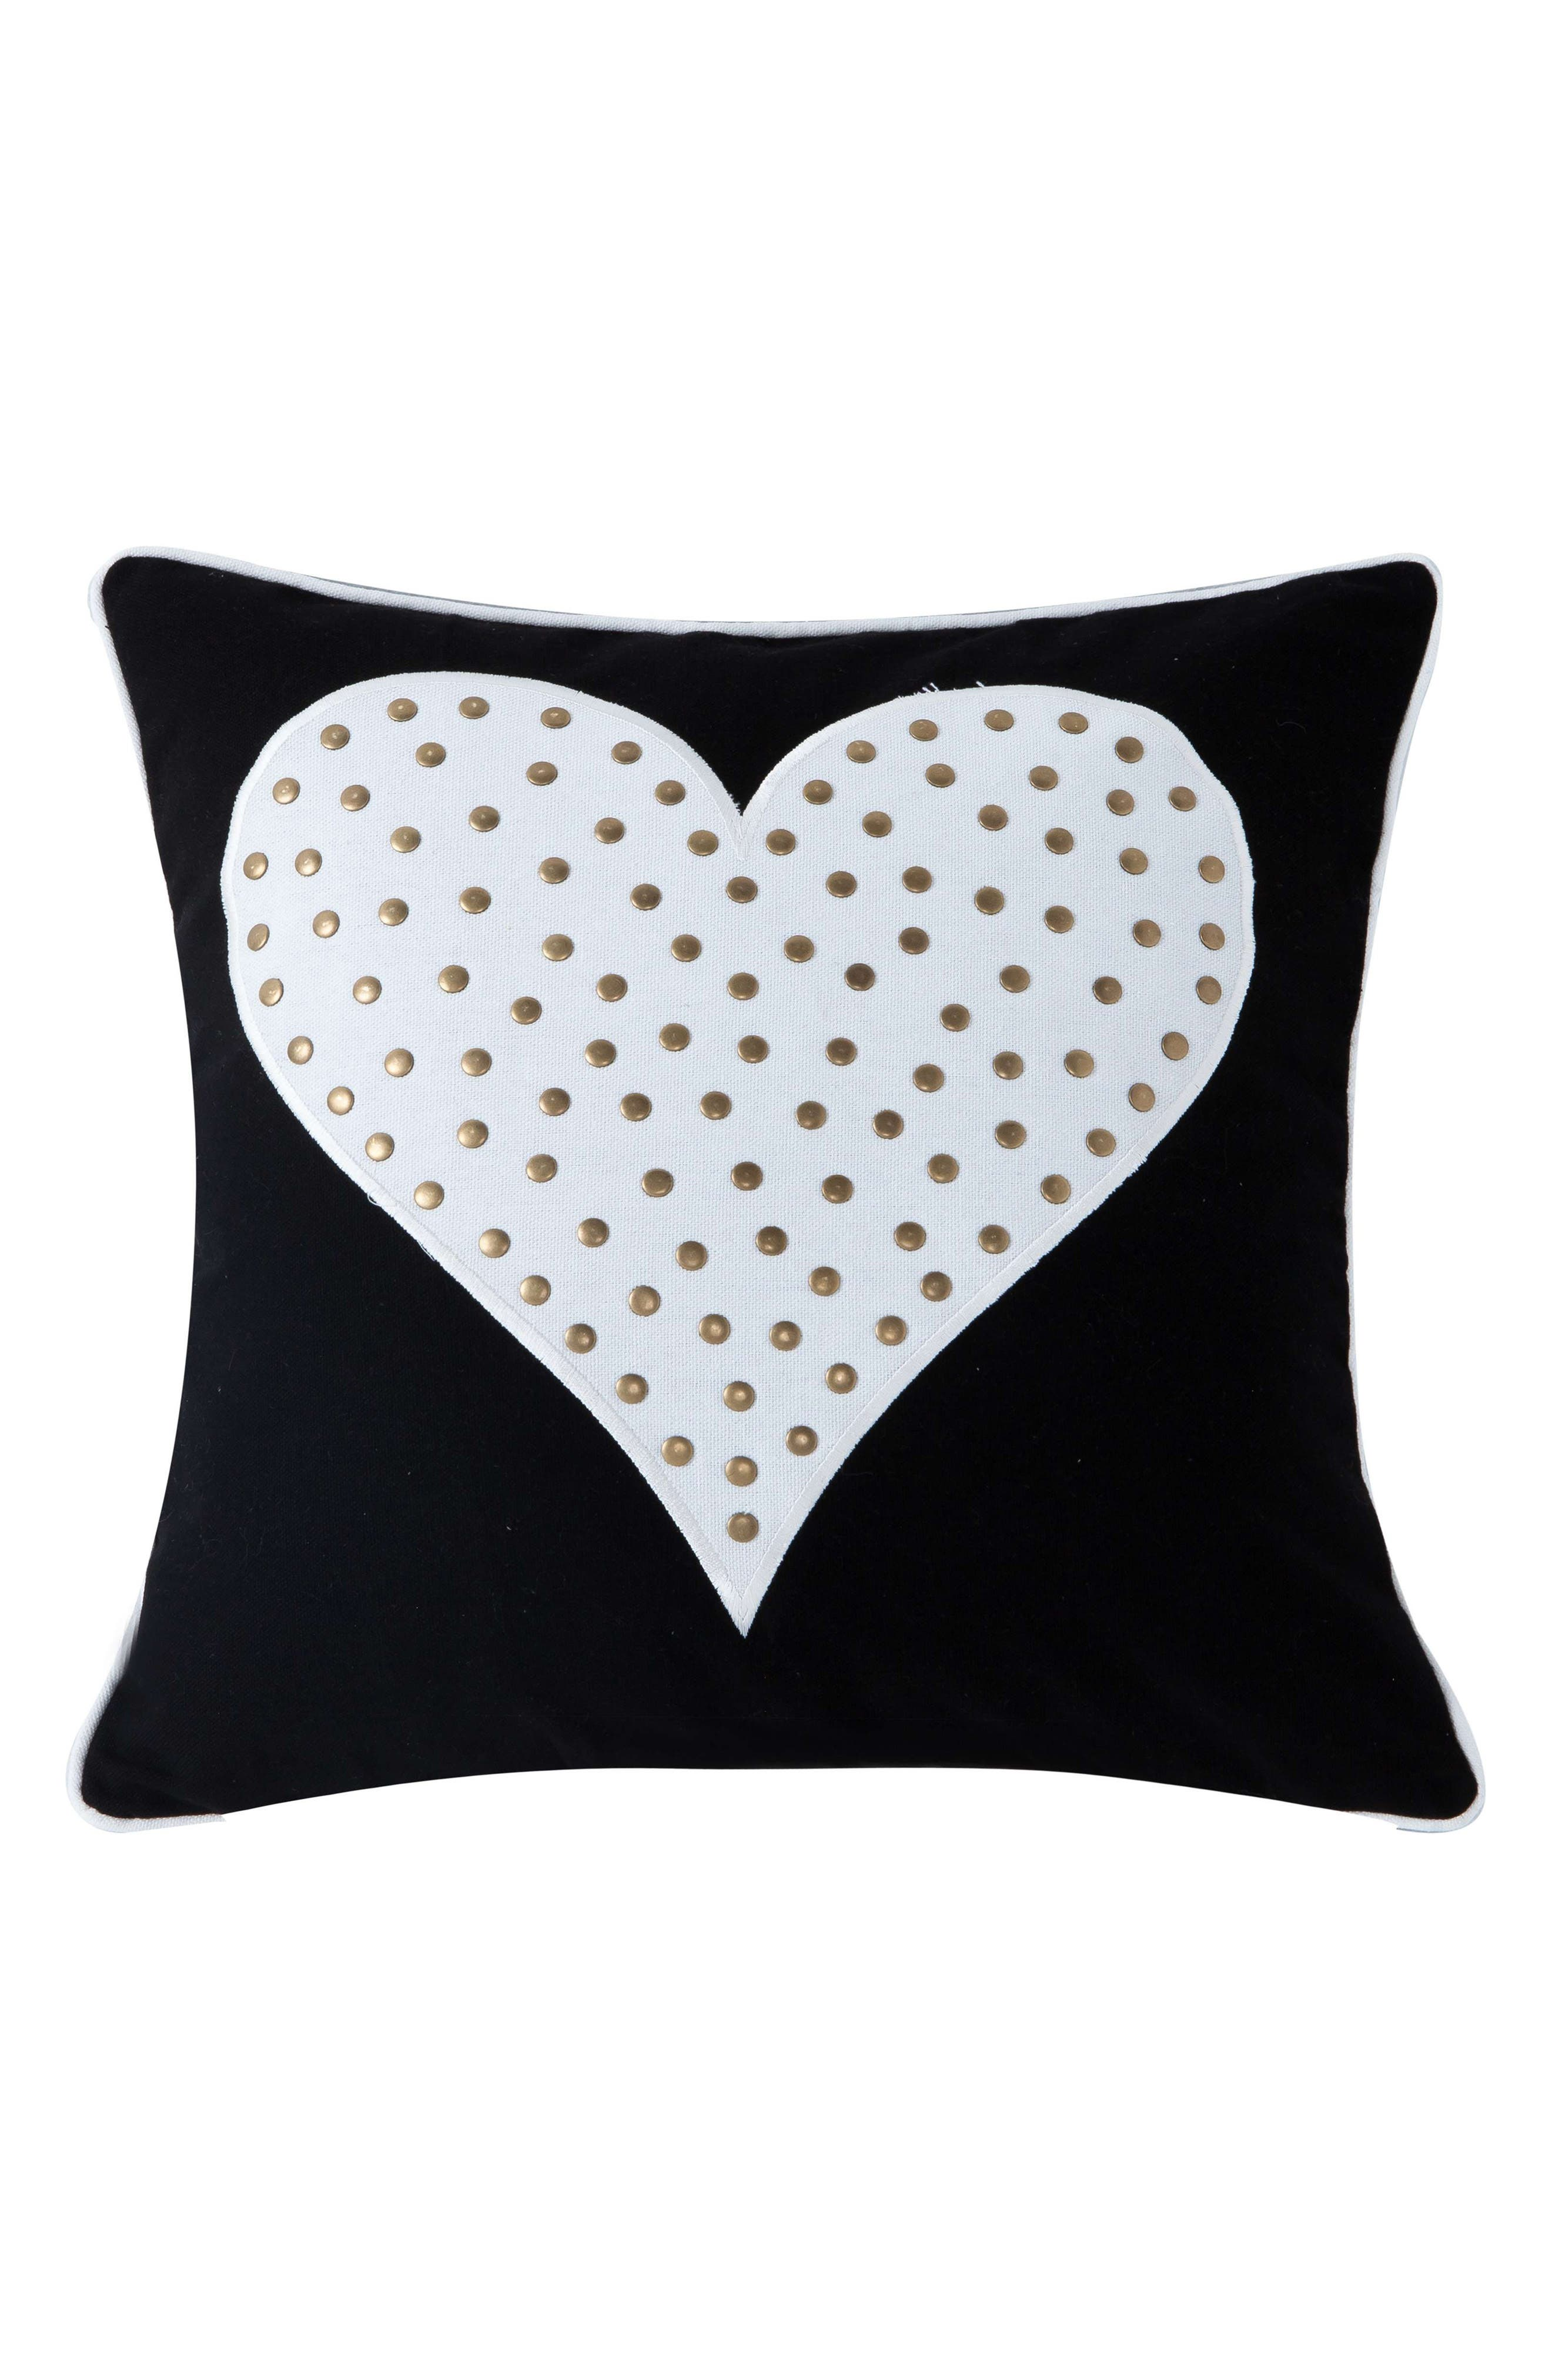 Main Image - kensie Stellah Studded Heart Accent Pillow